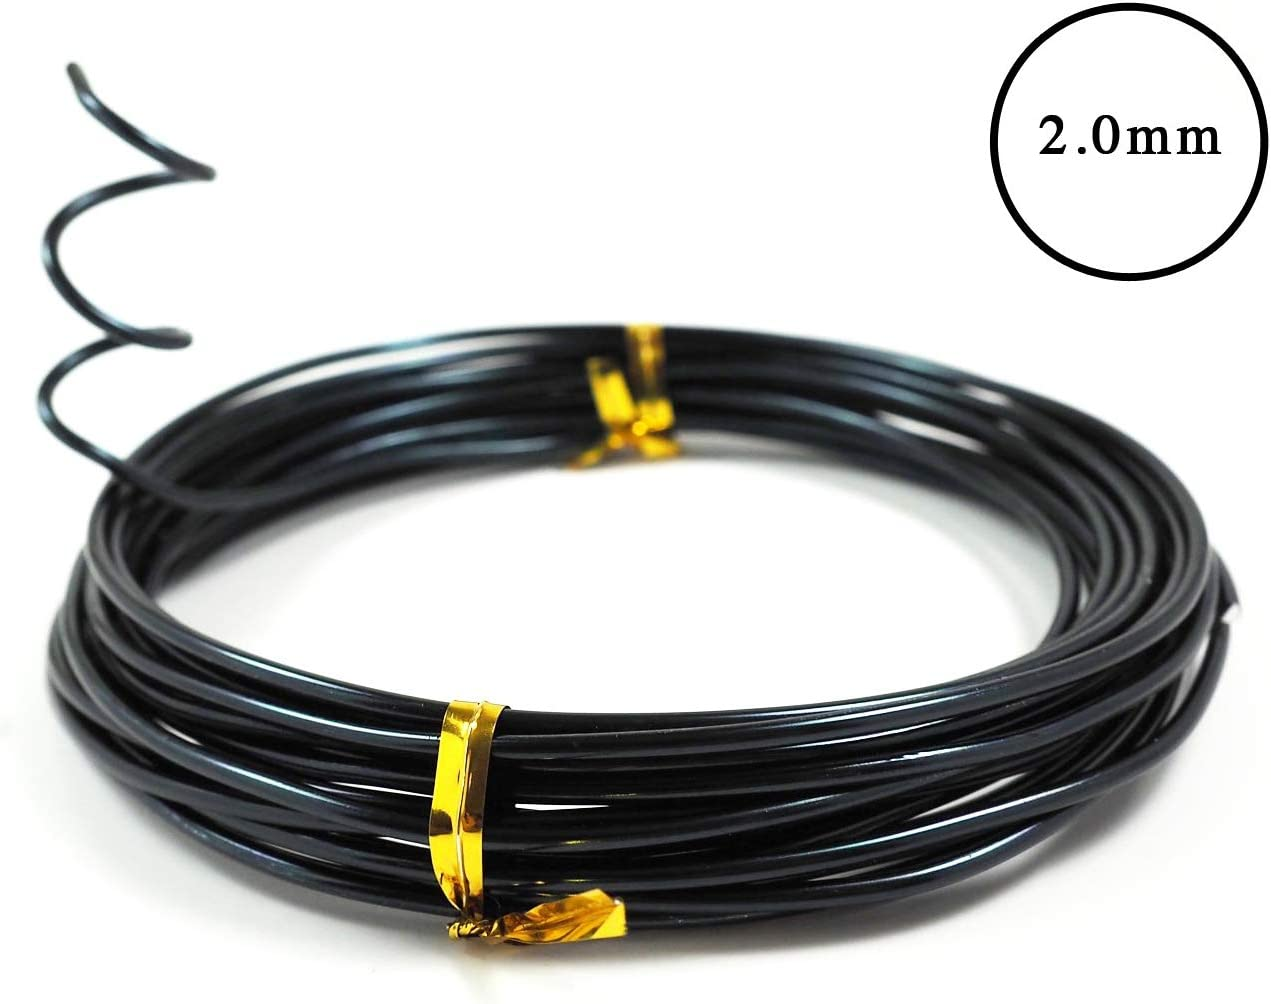 5 Sizes,Black -Choose Your Color 147 Feet Total WOVELOT Anodized Aluminum Bonsai Training Wire 5-Size Starter Set-1.0Mm,1.5Mm,2.0Mm,2.5Mm,3.0Mm